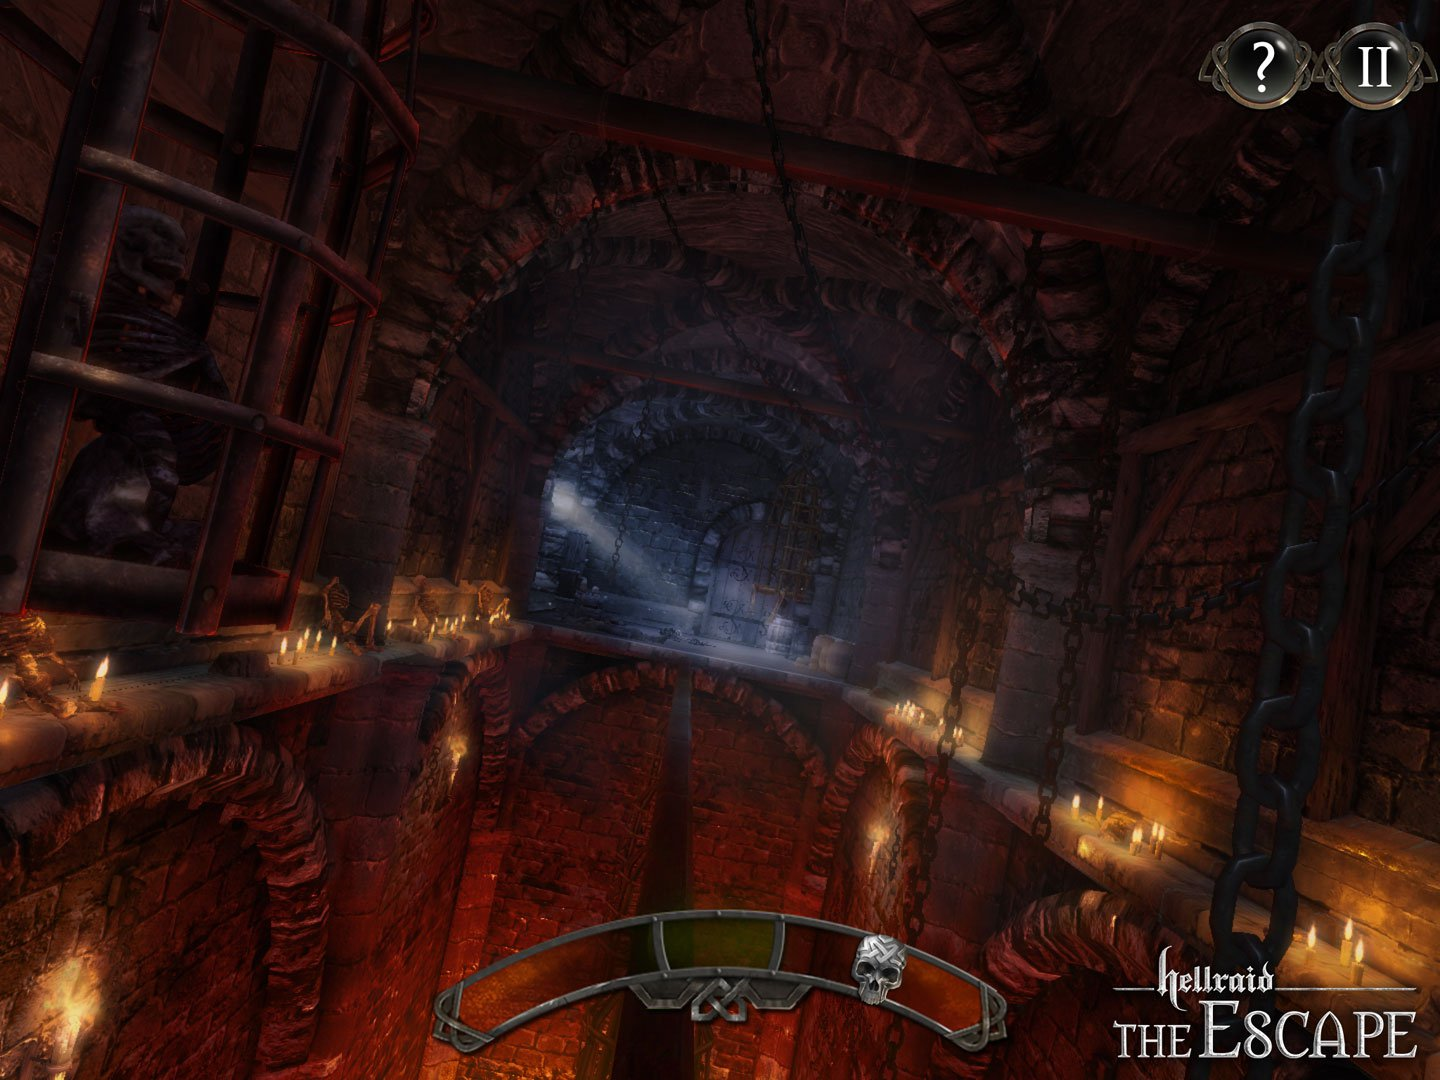 Hellraid: The Escape is set to ensnare you in its magic prison on iOS on July 10th